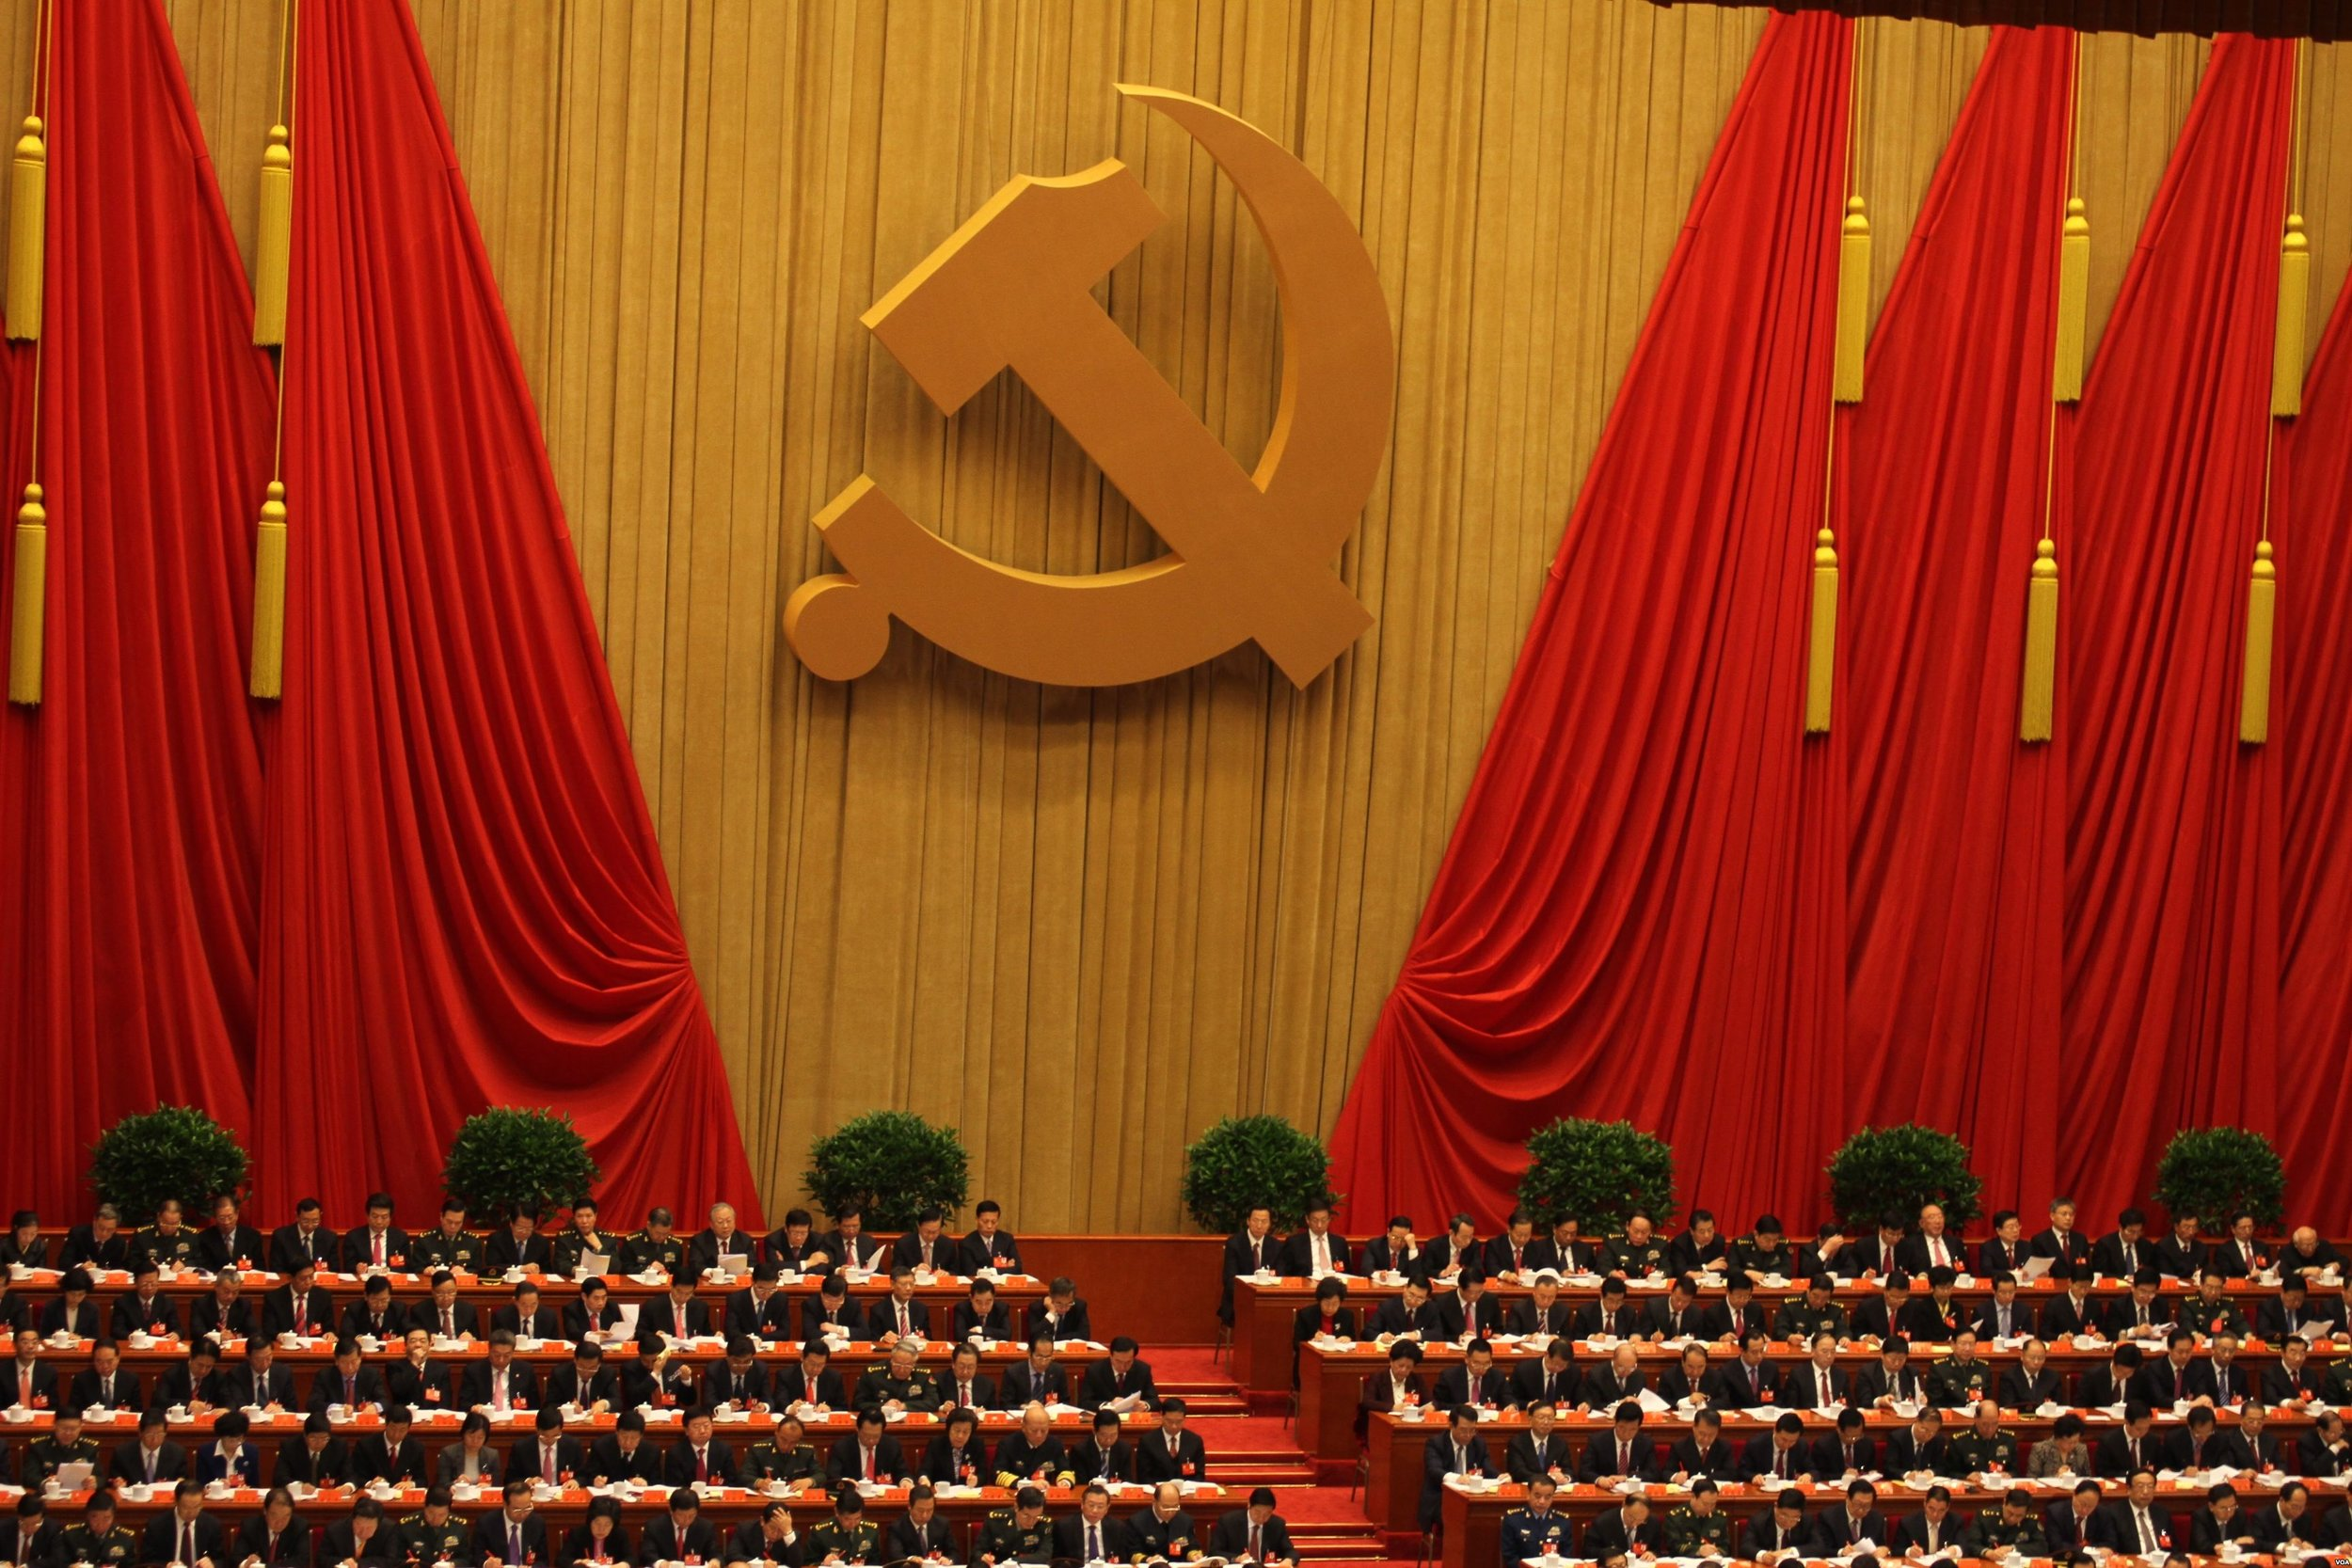 18th National Congress of the Communist Party of China, 11 November 2012 (Wikimedia)